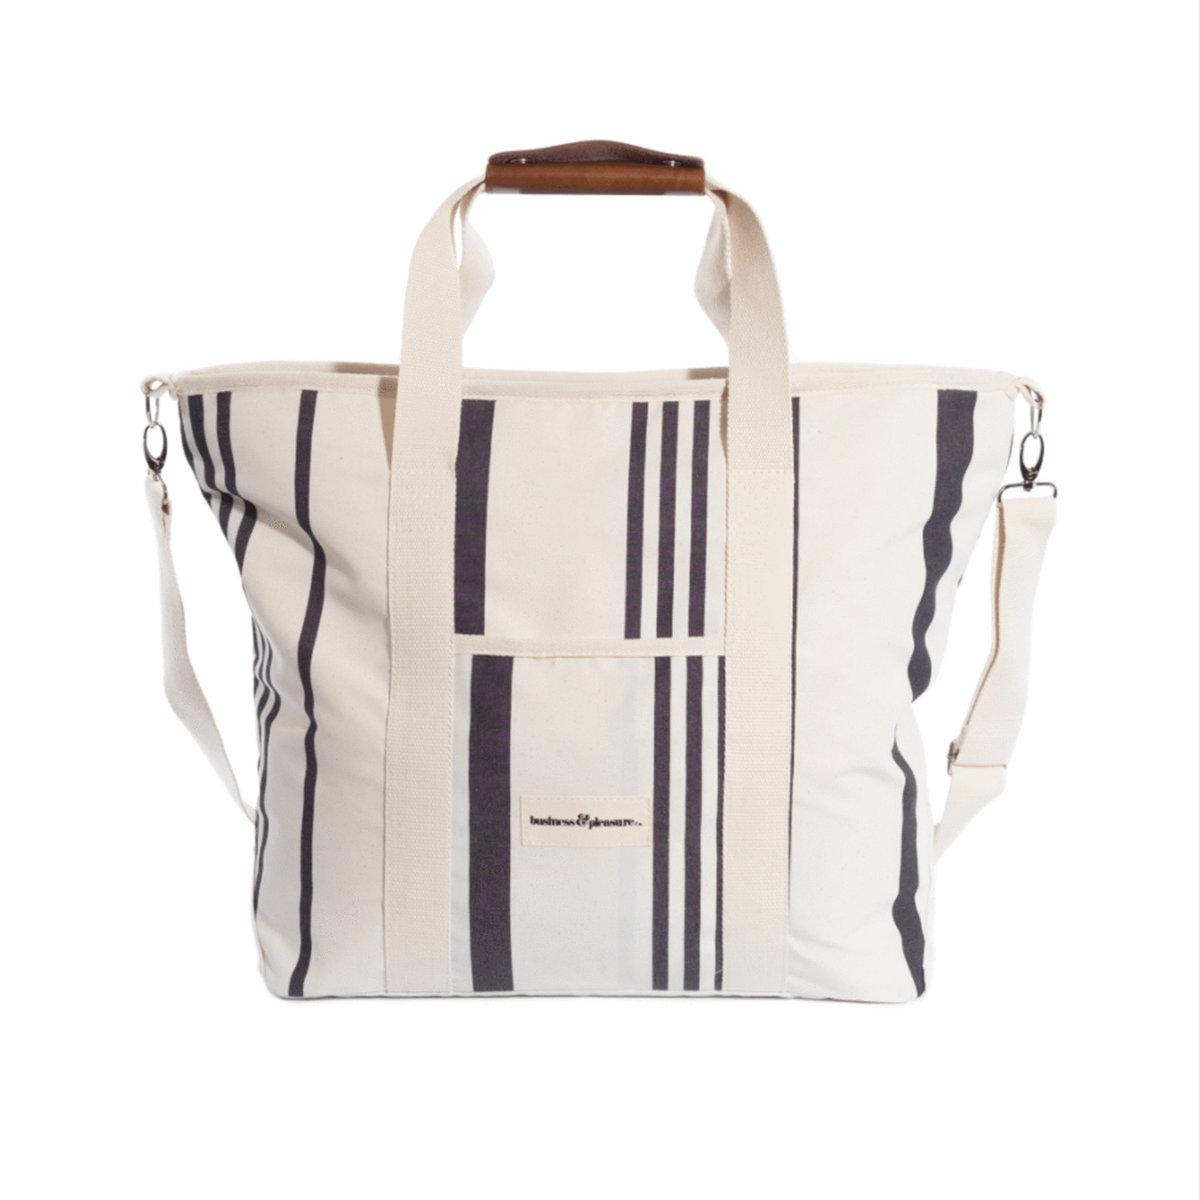 asher and rye cooler tote bag